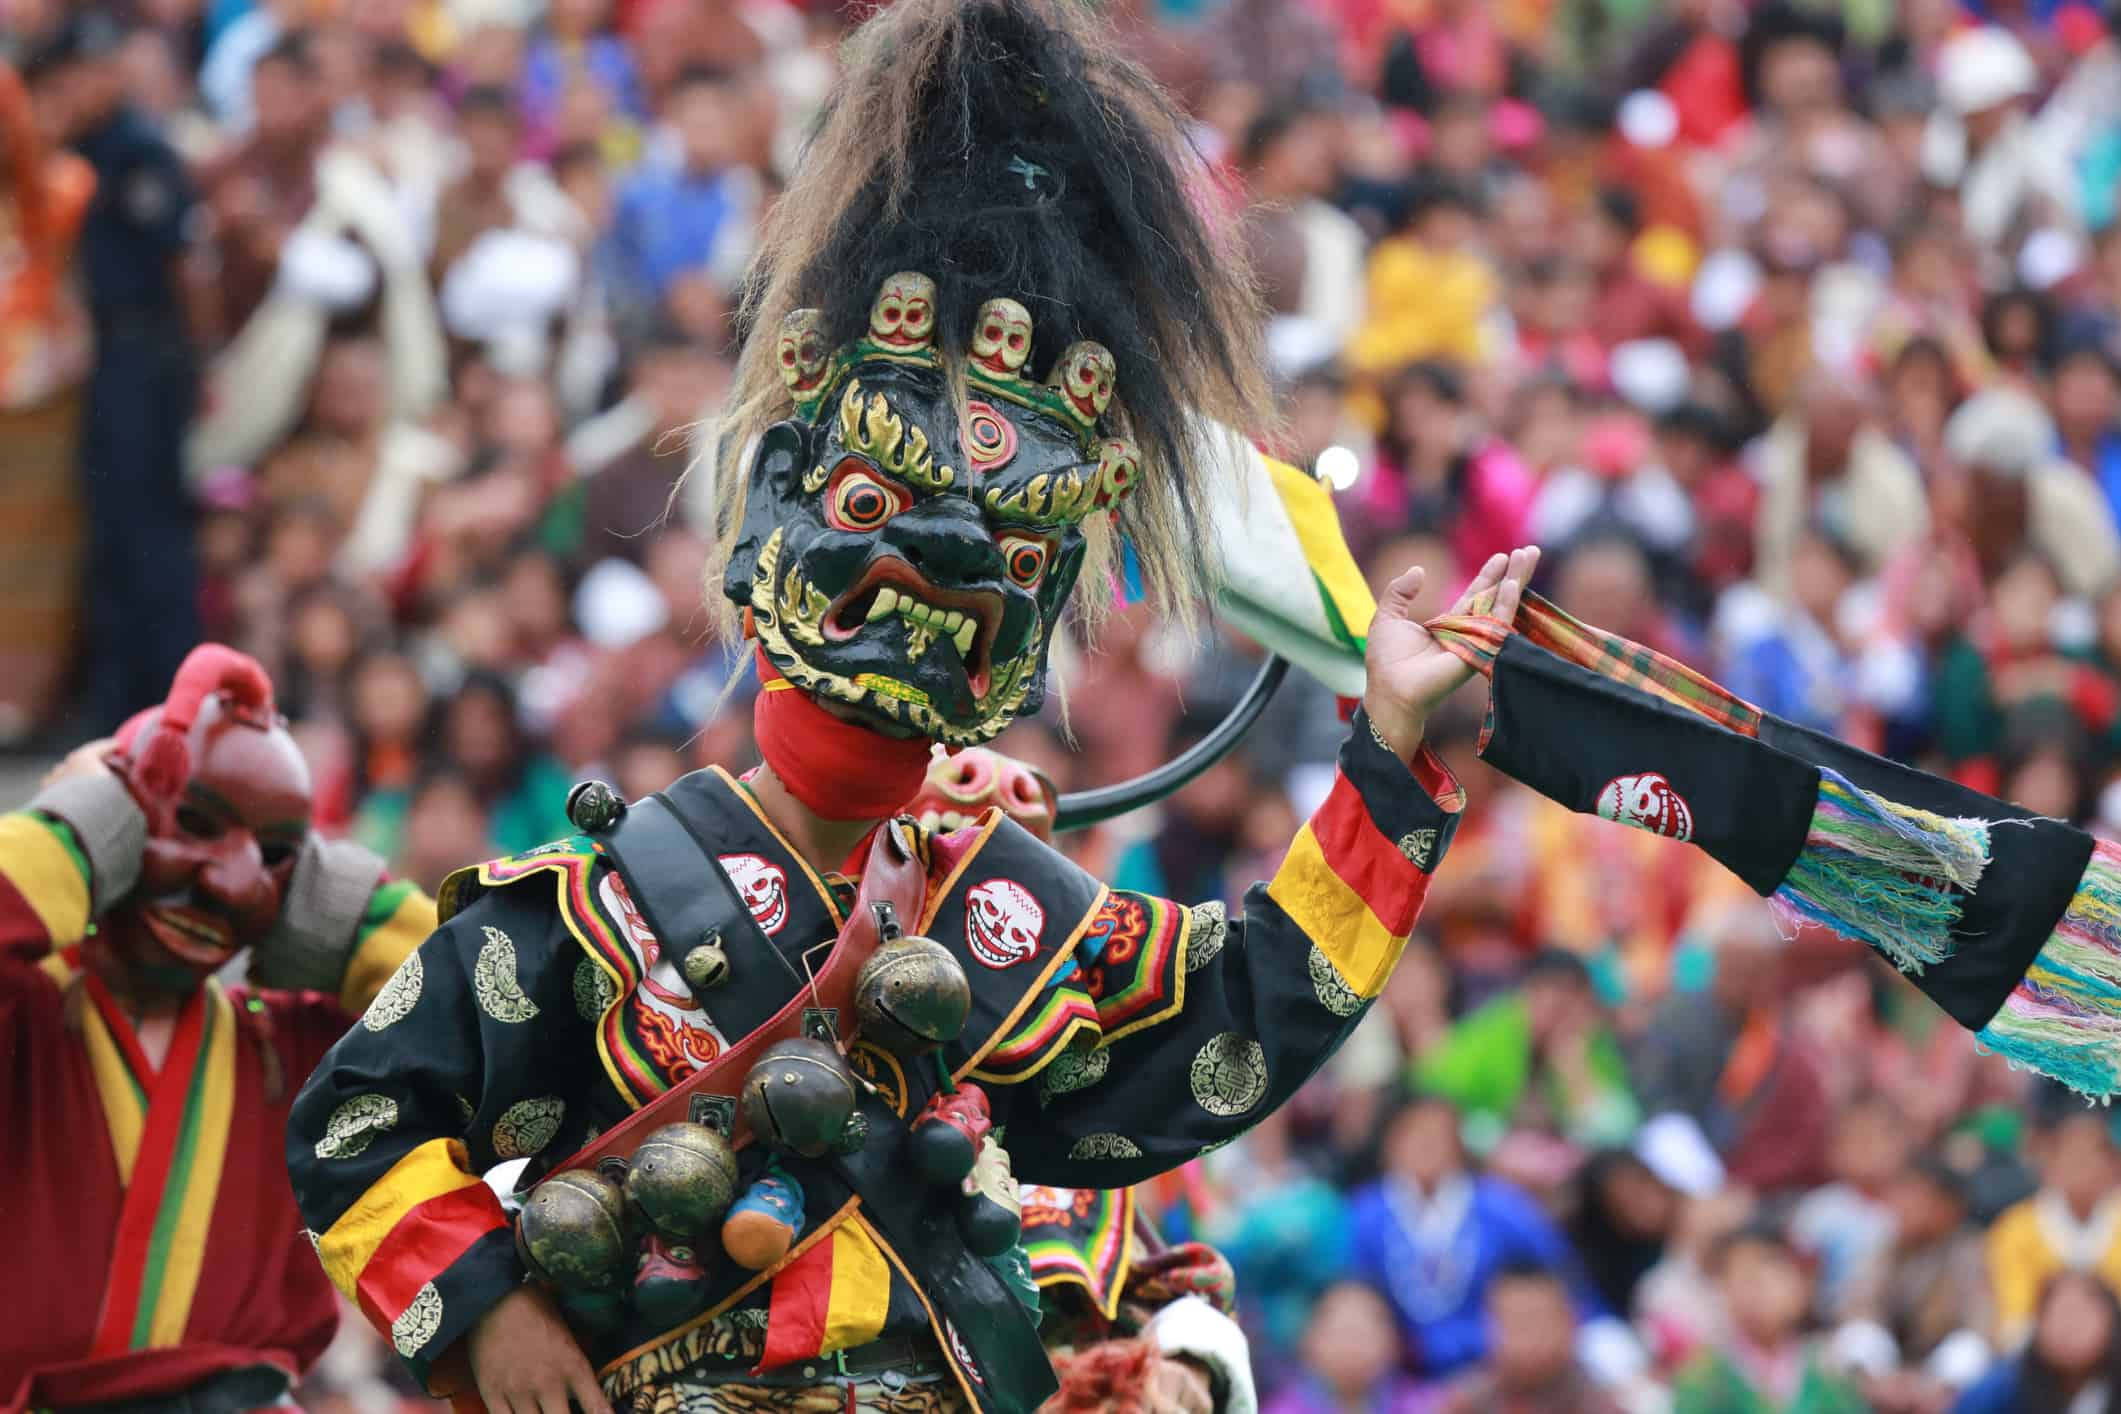 Masked dance is one of the main attractions during annual festivals or Tshechu in Bhutan. It shows vibrant and unique cultural heritage.